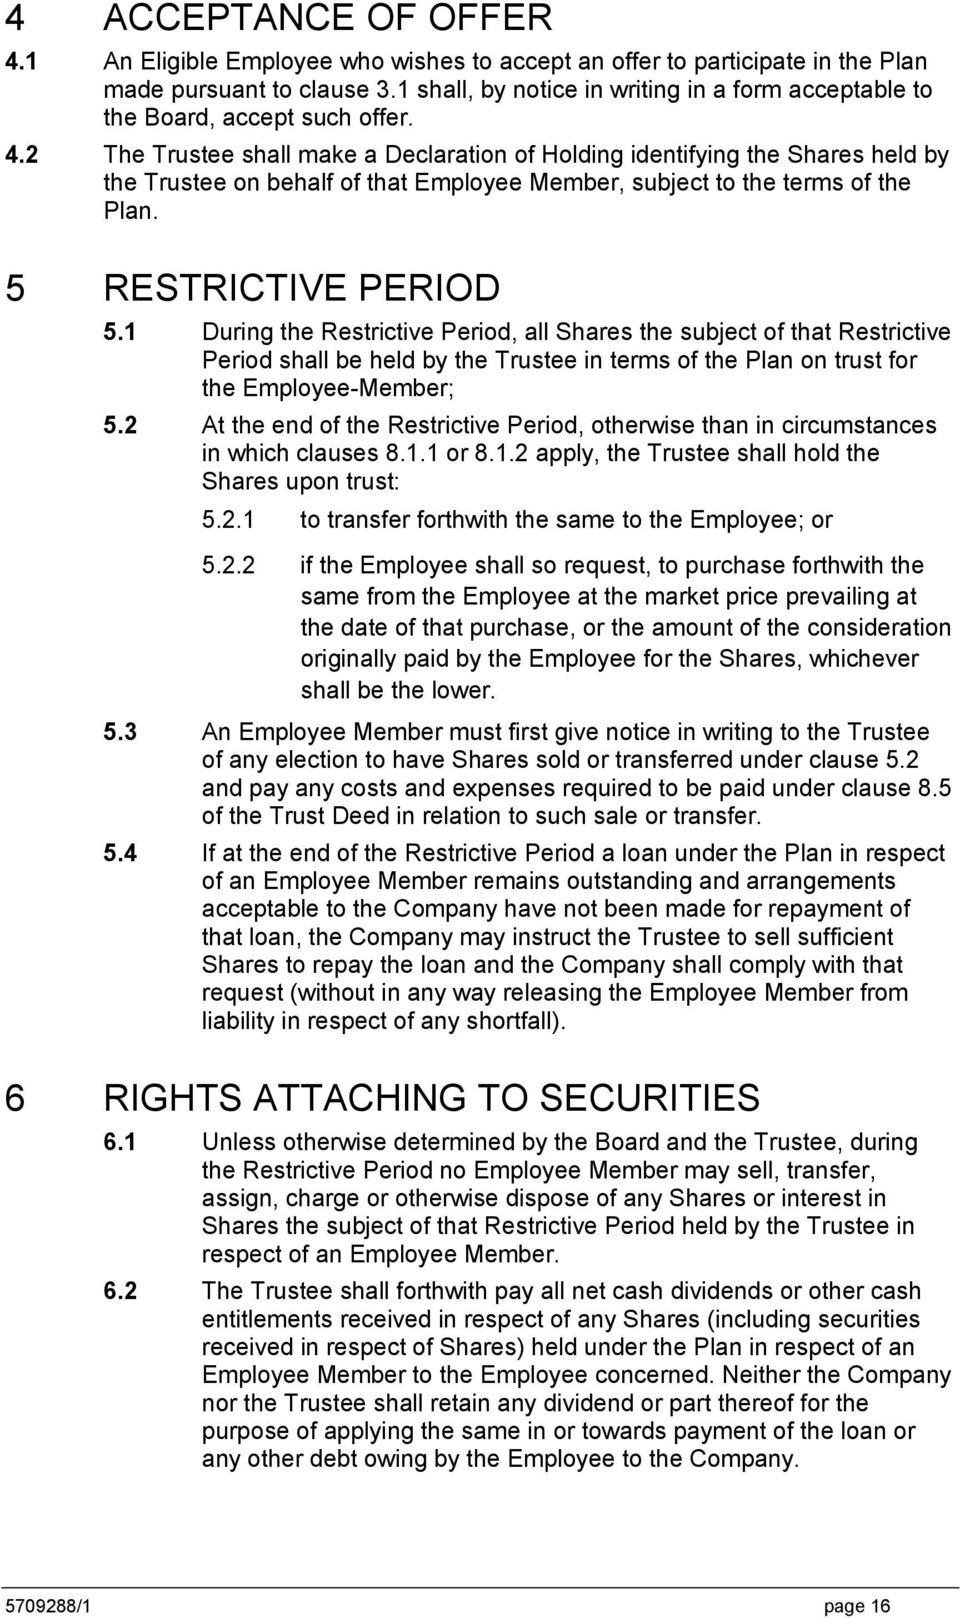 2 The Trustee shall make a Declaration of Holding identifying the Shares held by the Trustee on behalf of that Employee Member, subject to the terms of the Plan. 5 RESTRICTIVE PERIOD 5.